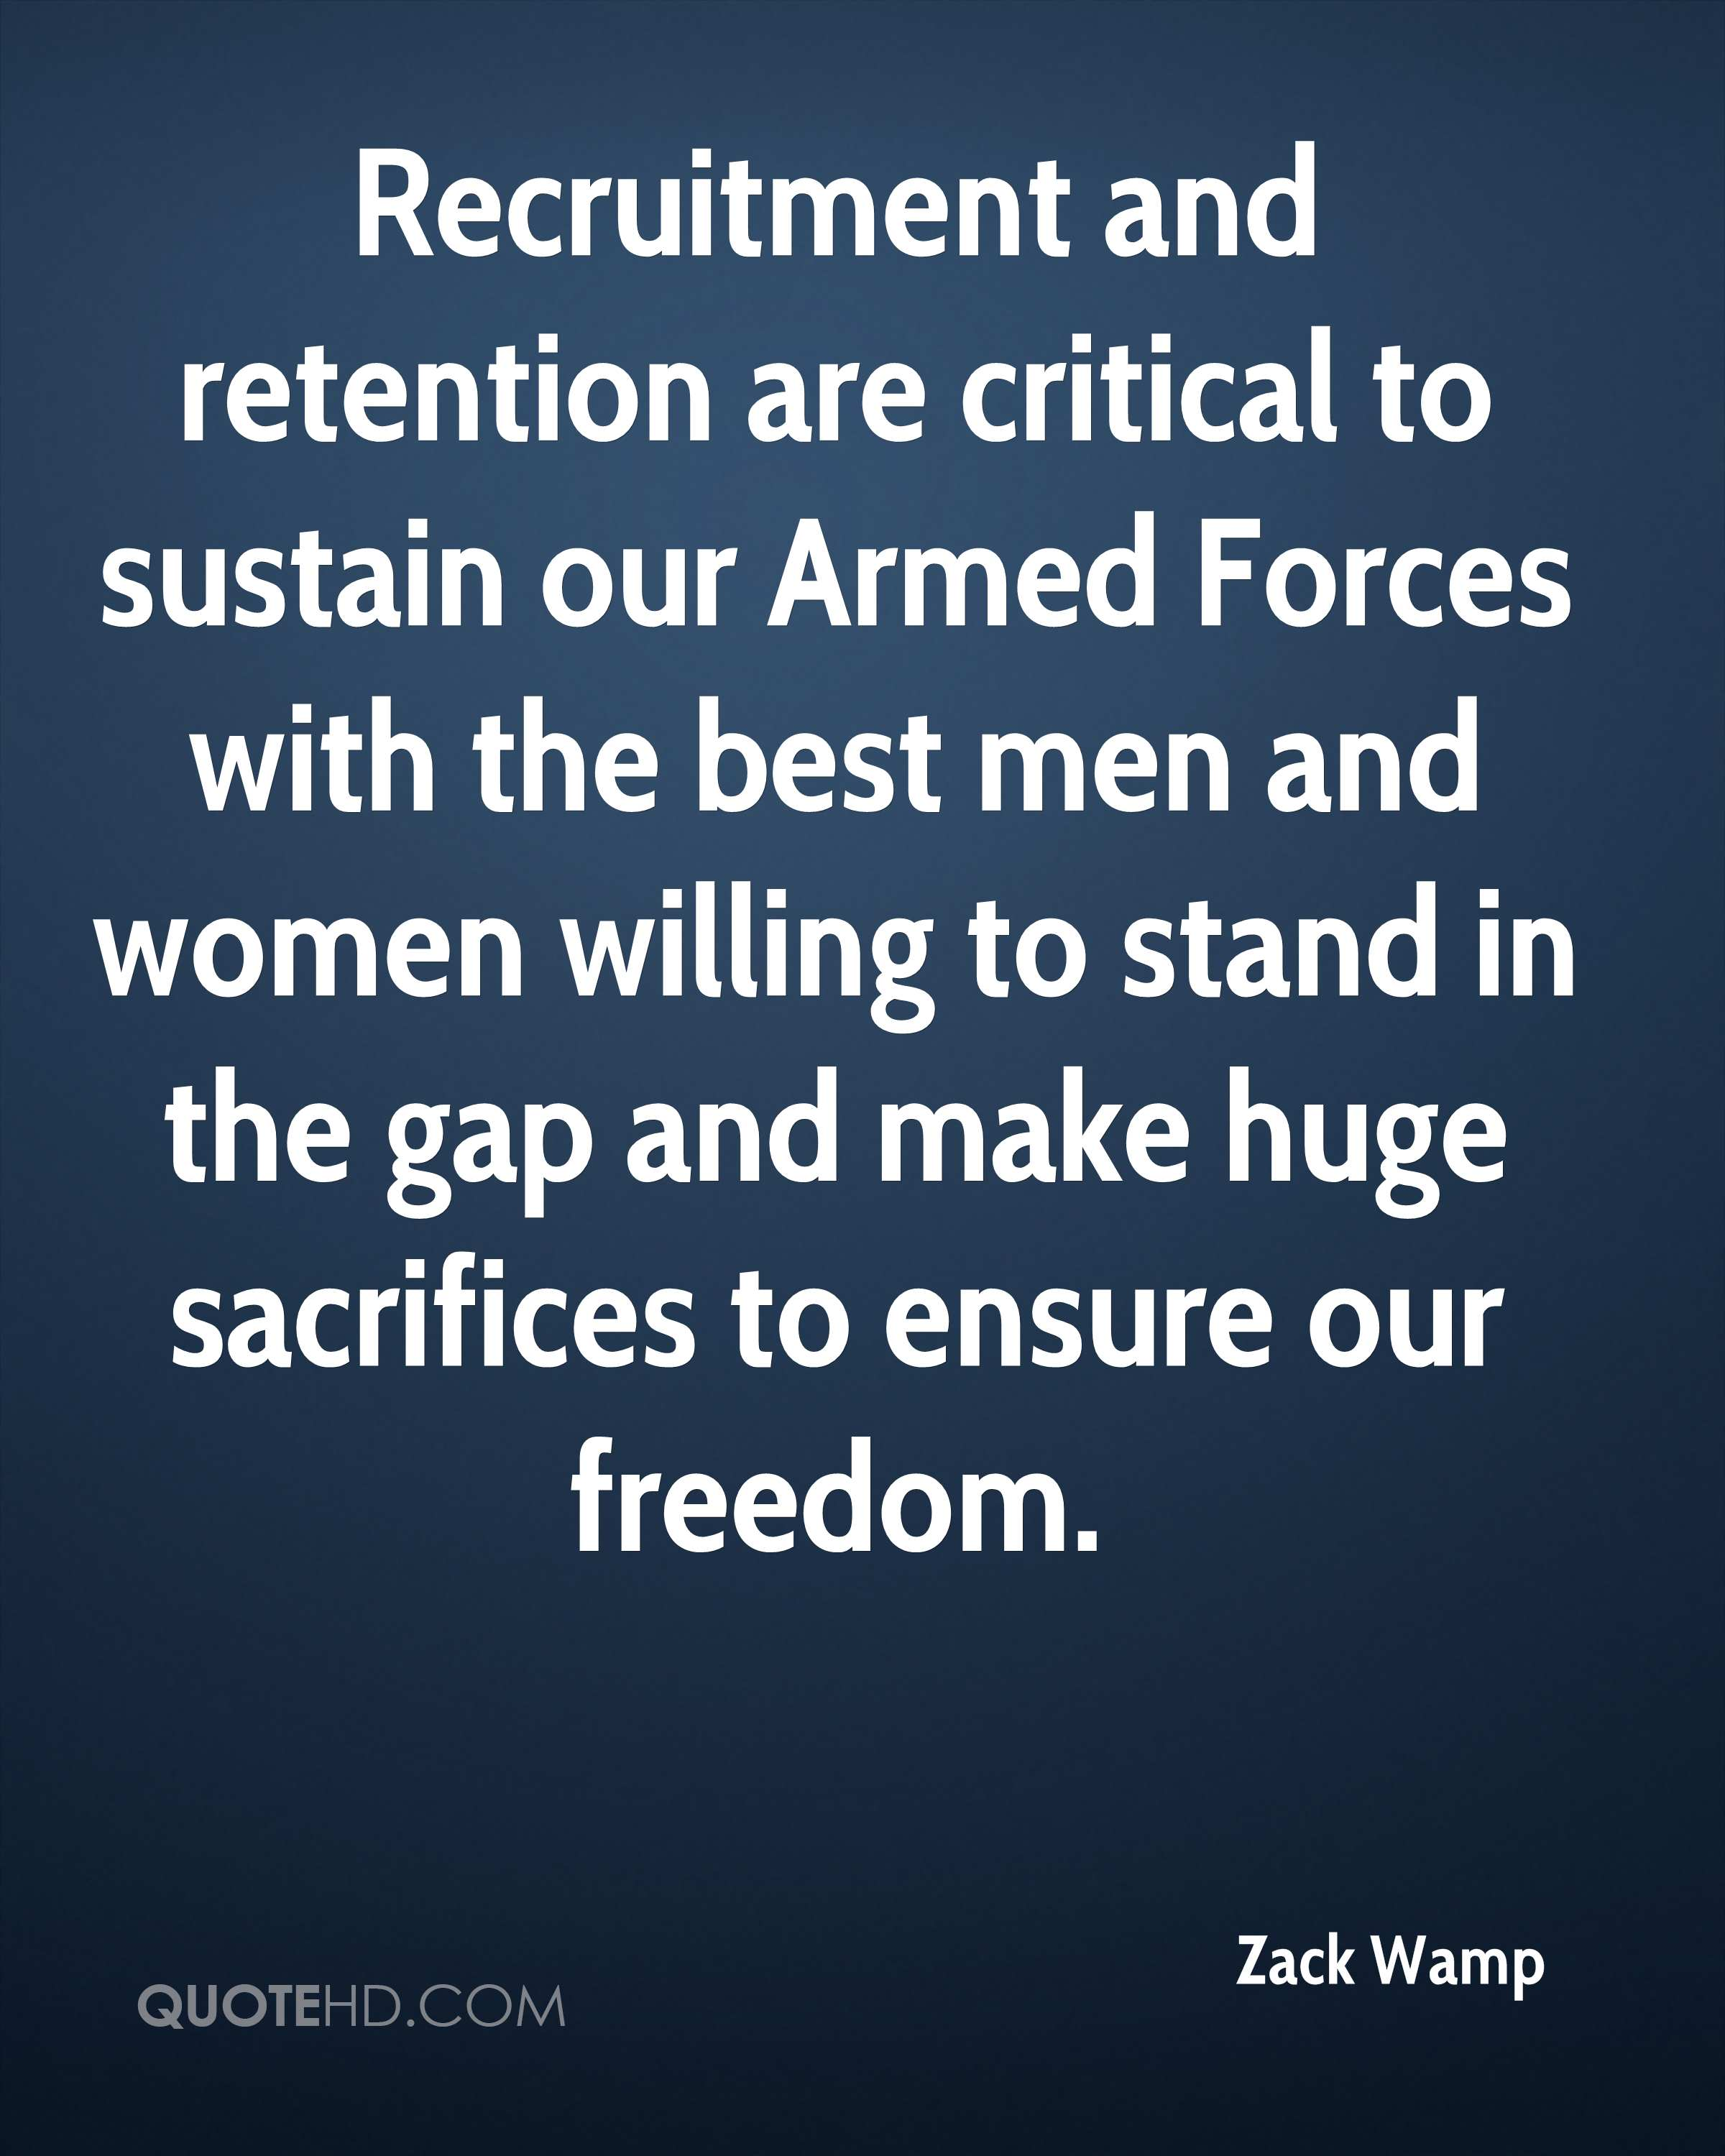 Recruitment and retention are critical to sustain our Armed Forces with the best men and women willing to stand in the gap and make huge sacrifices to ensure our freedom.